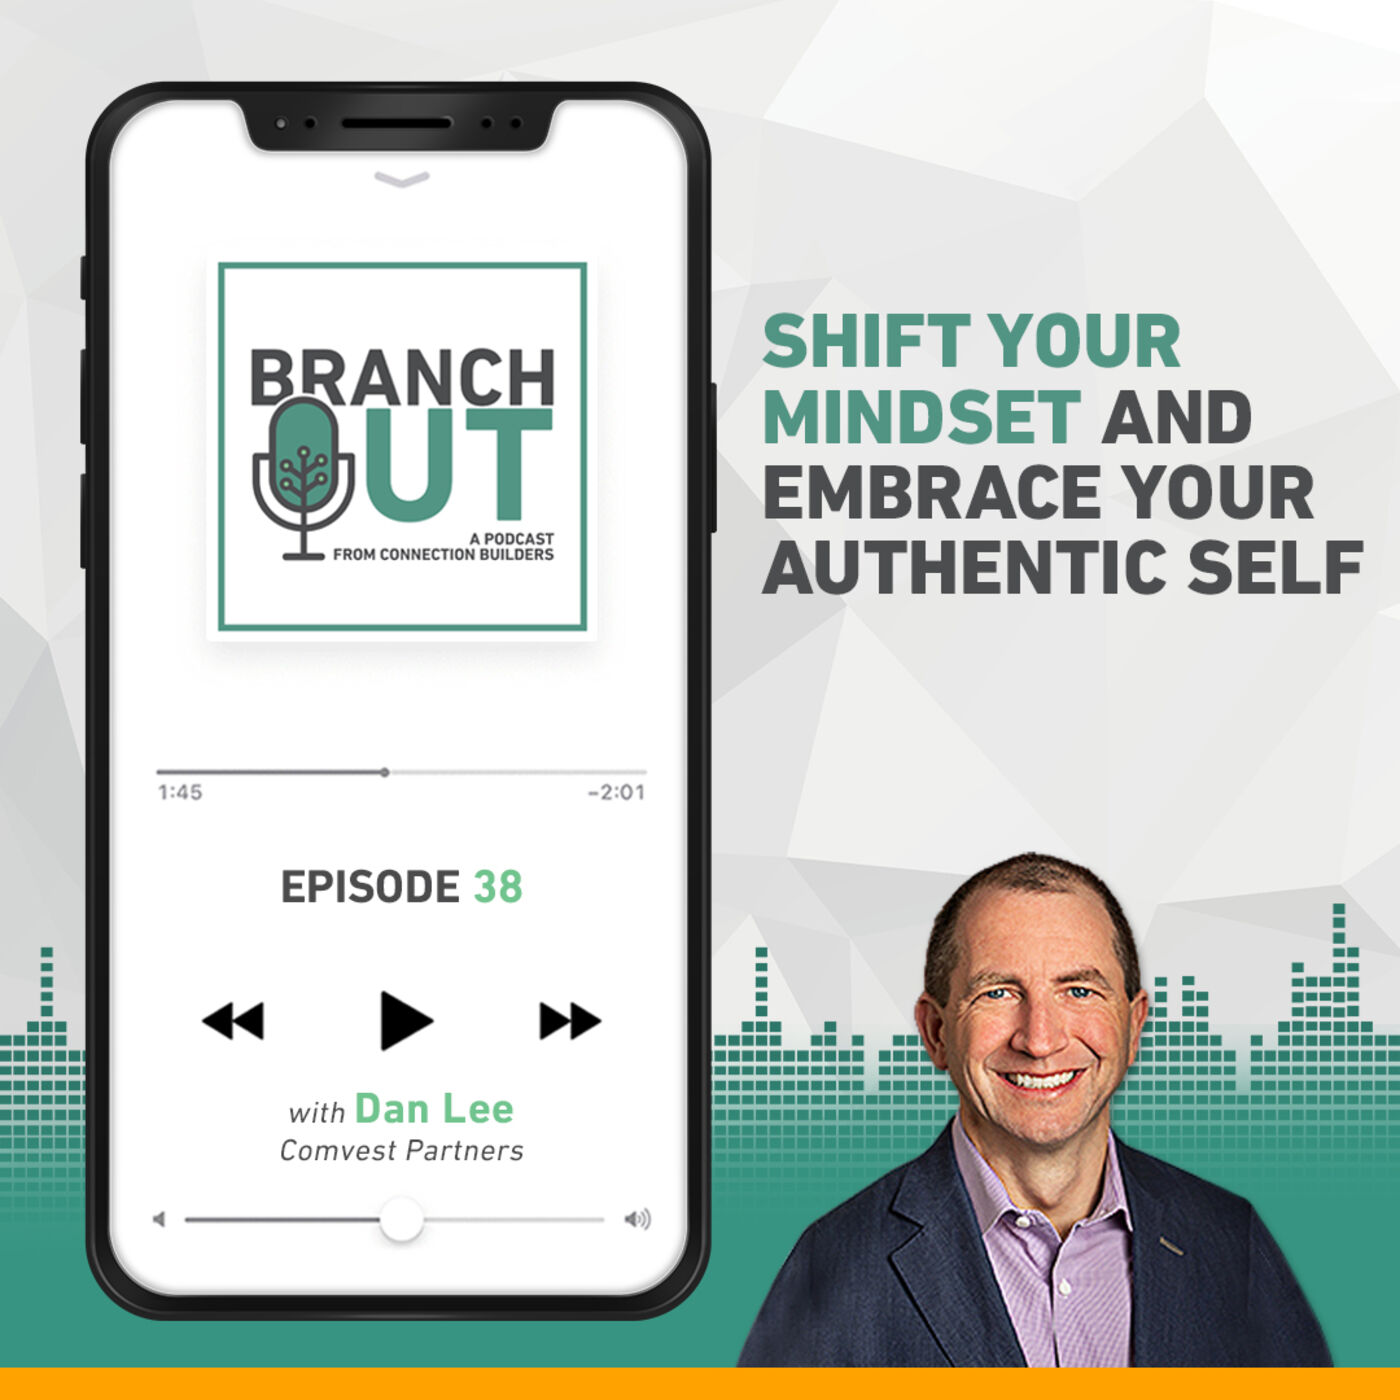 Shift Your Mindset and Embrace Your Authentic Self - Dan Lee